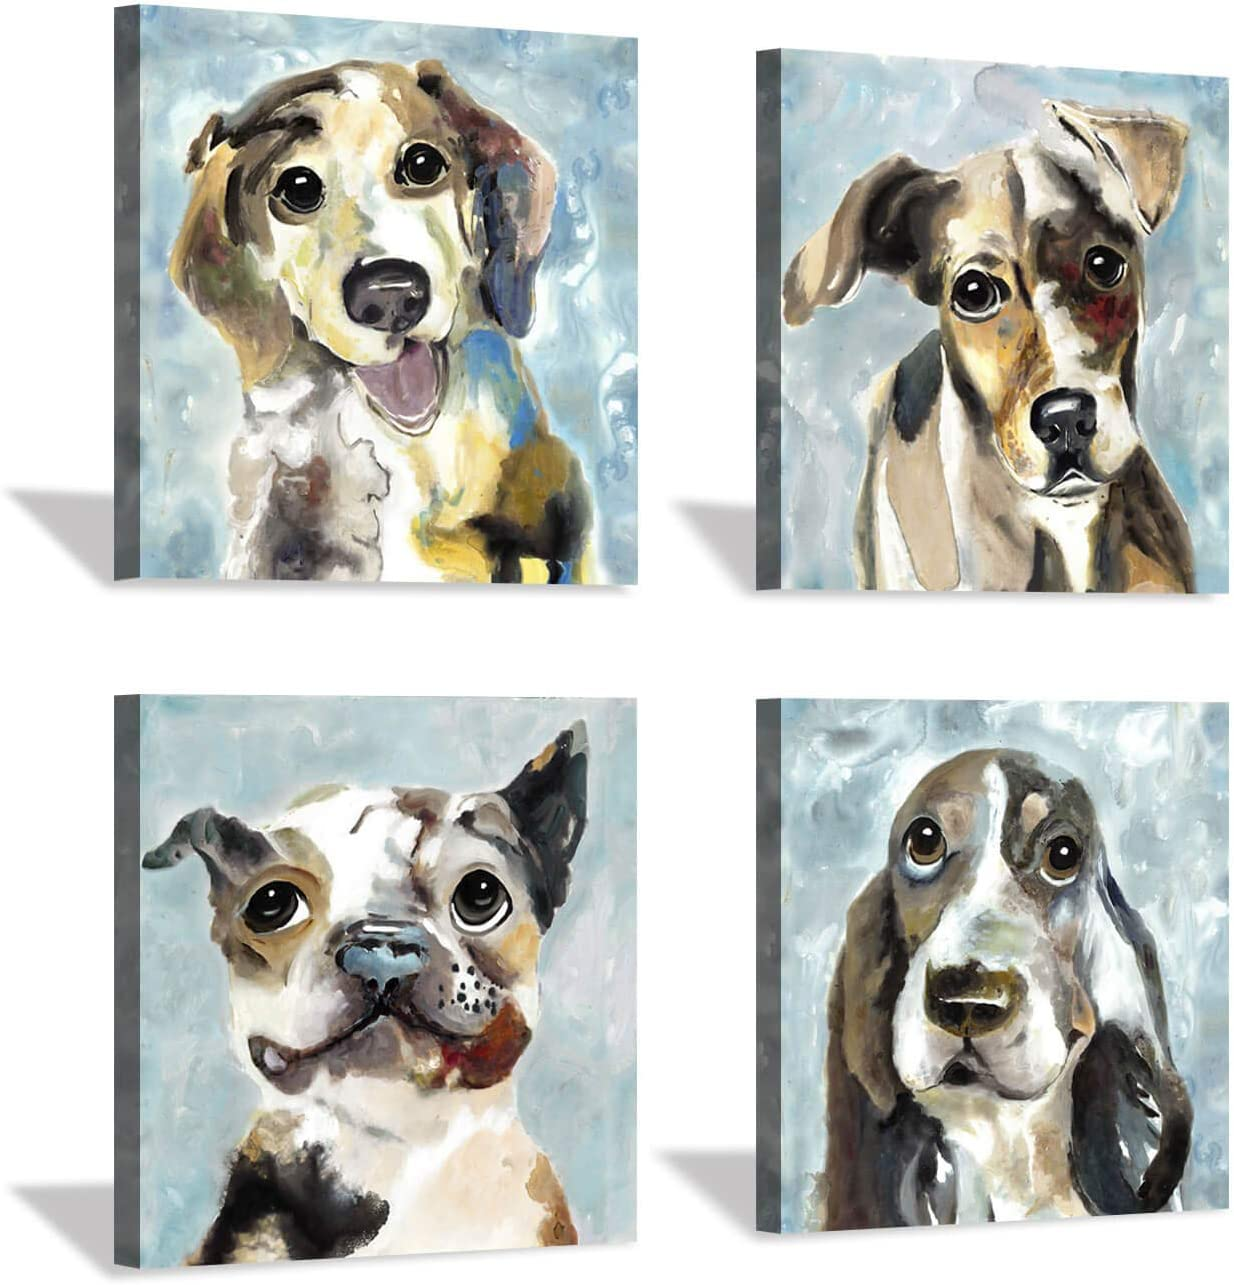 Hardy Gallery Pet Canvas Painting Puppy Artwork: Abstract Dog Picture Print on Canvas for Room Decorations (12'' x 12'' x 4 Panels)